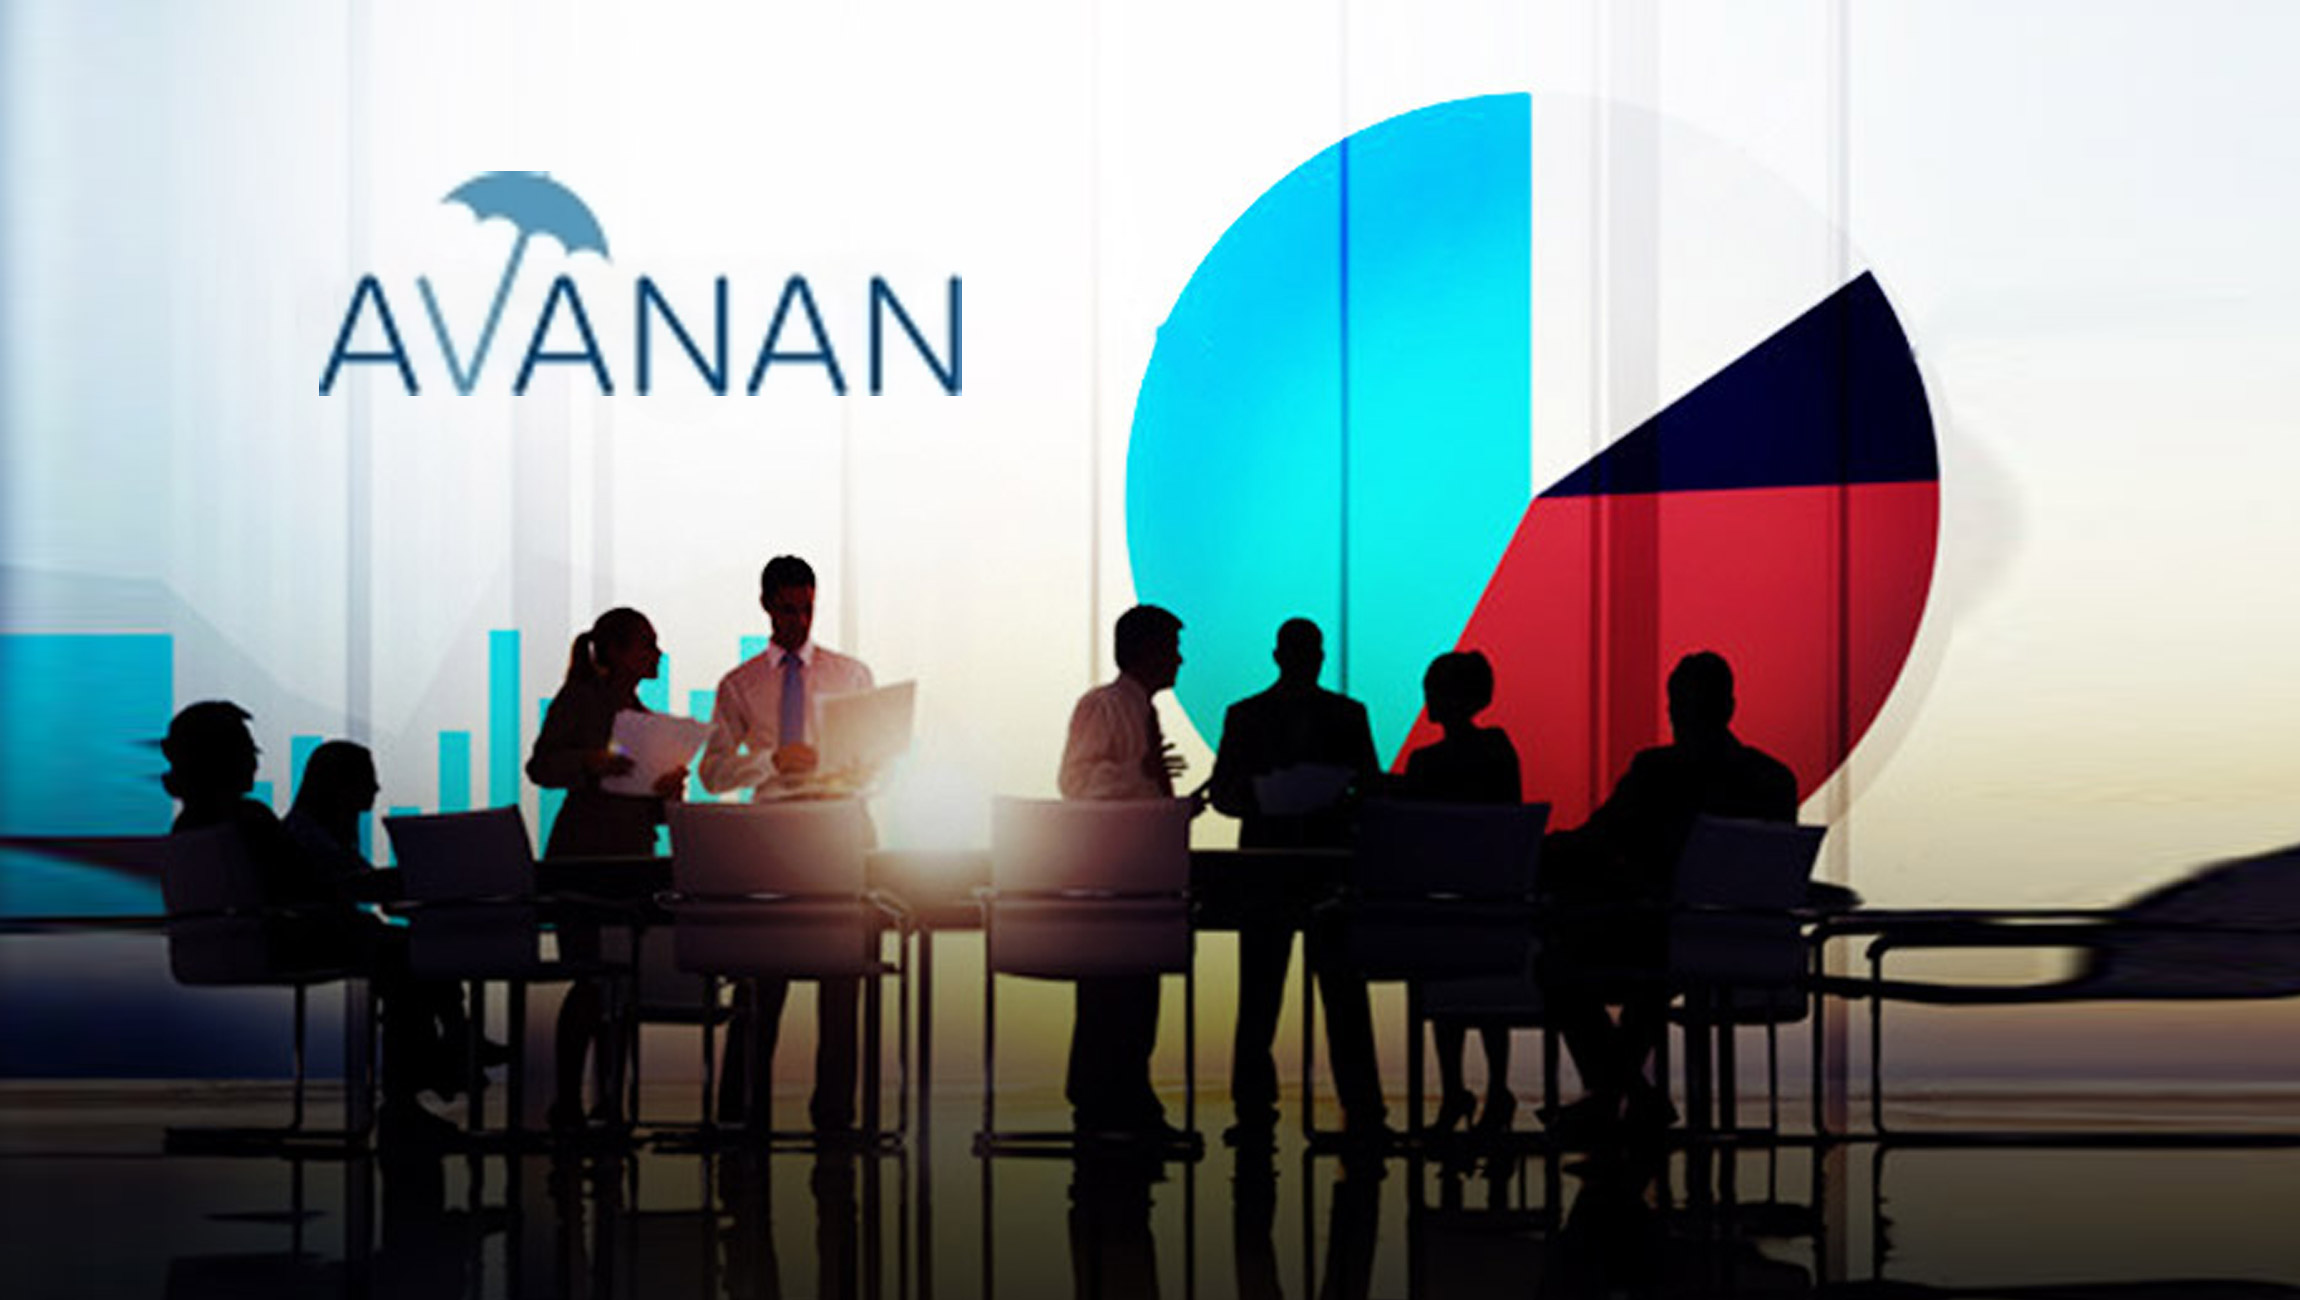 Avanan Announces Exceeding 4,000 Customers With 260% Year-Over-Year Growth